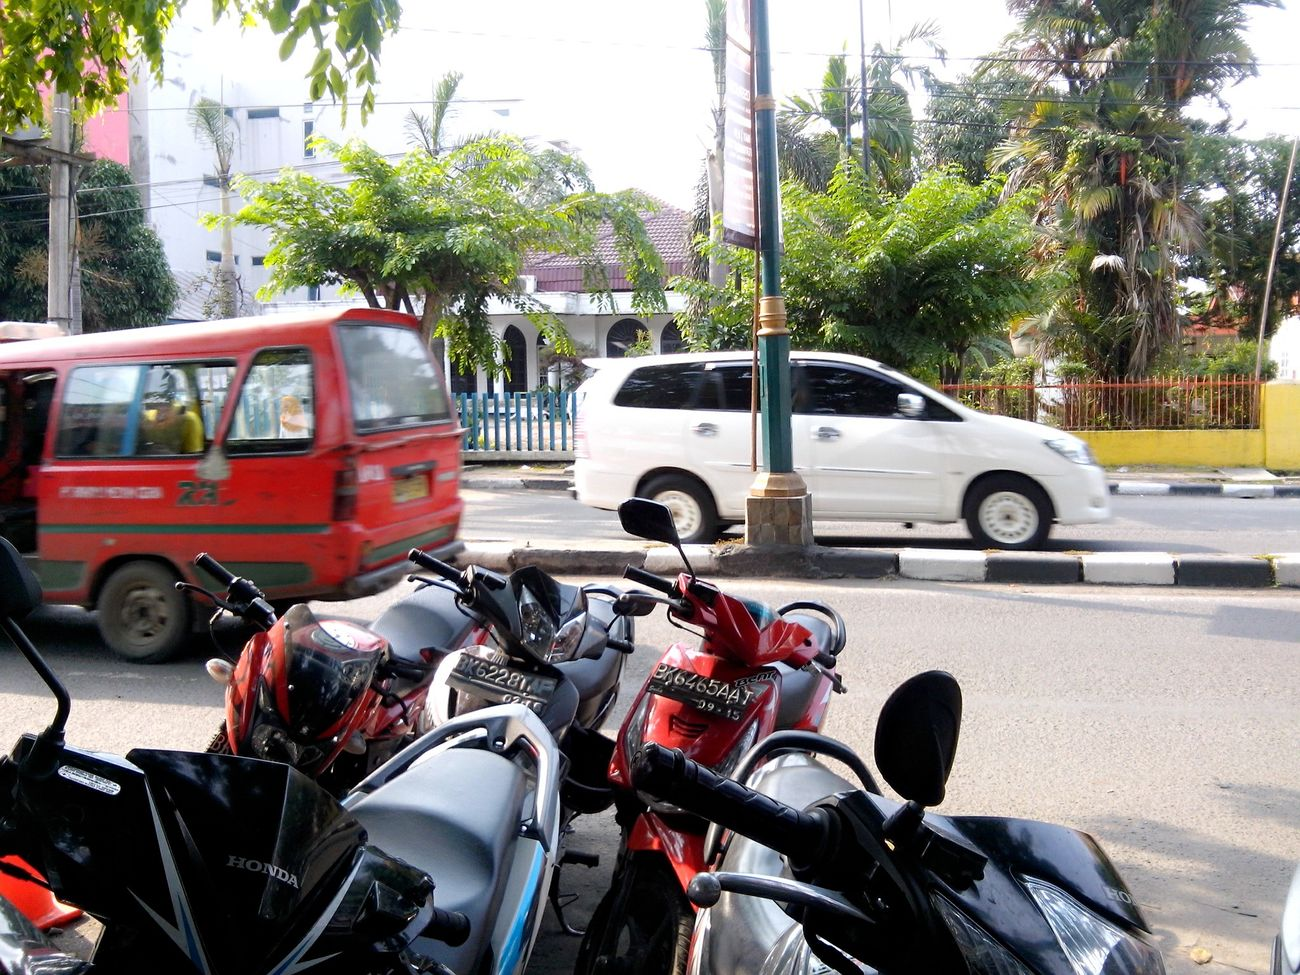 Traffic Motorbike Park Angkot Car